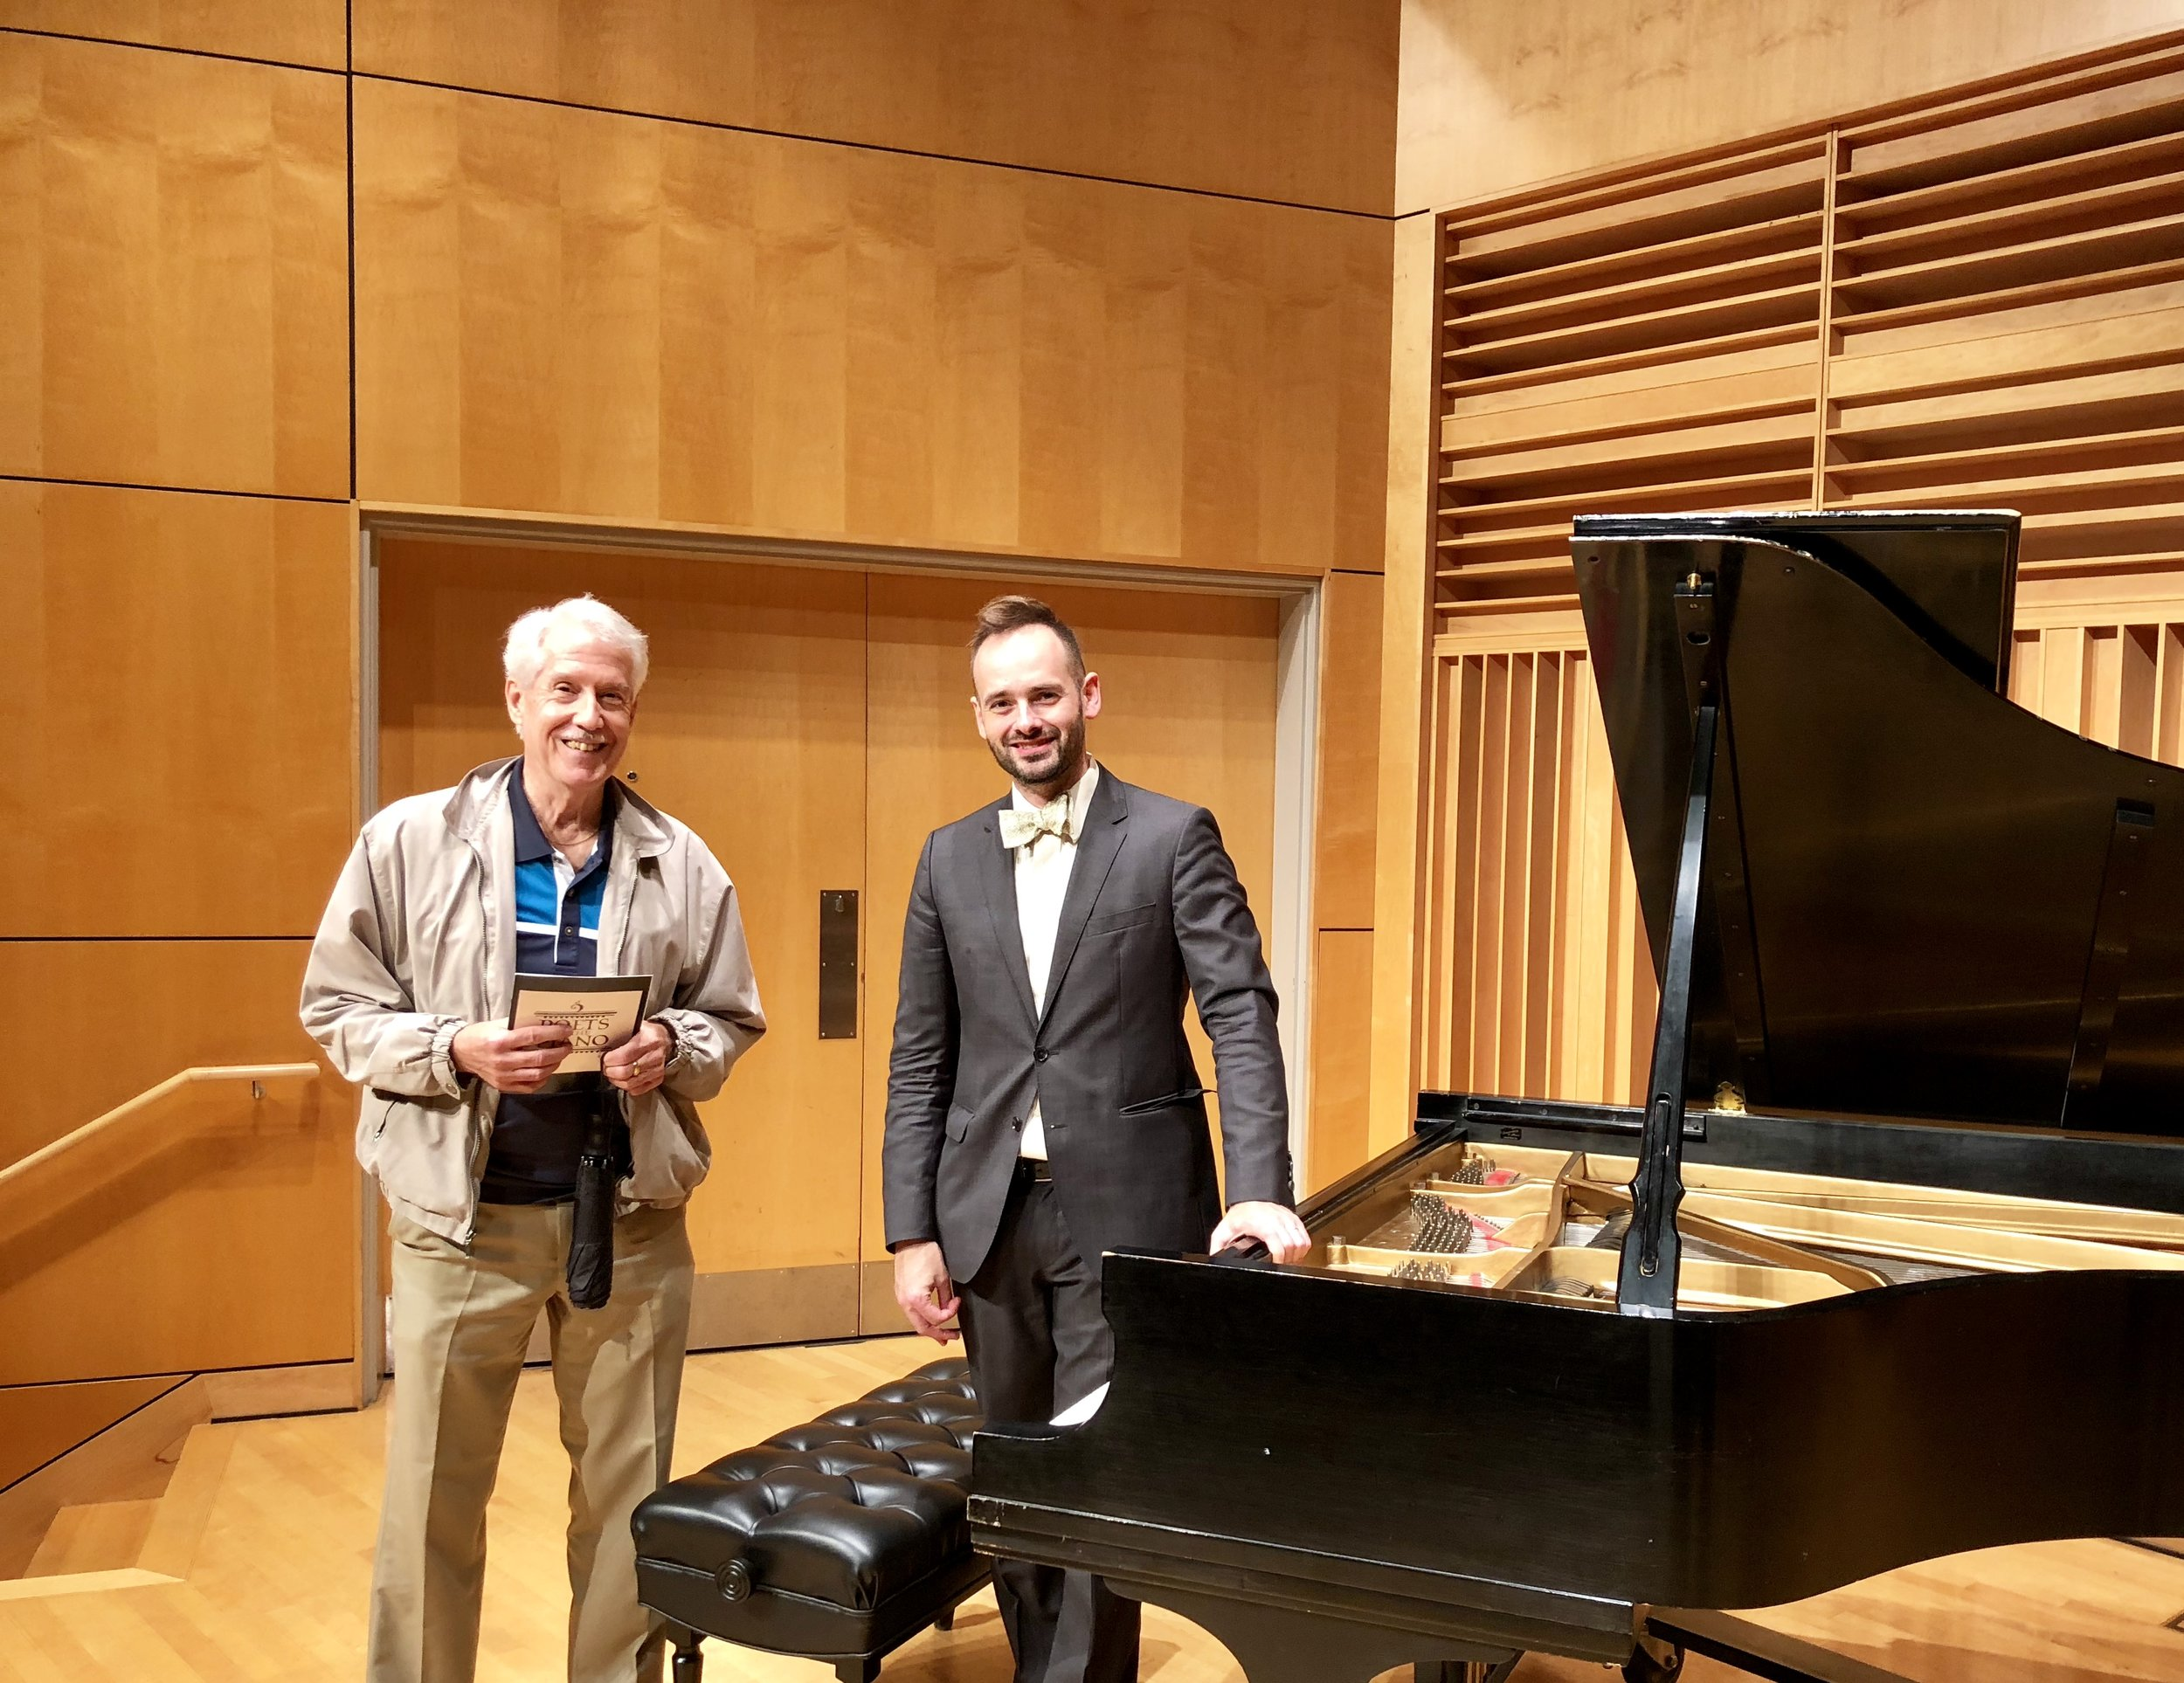 bill hughes taught piano at ISU for 40 years